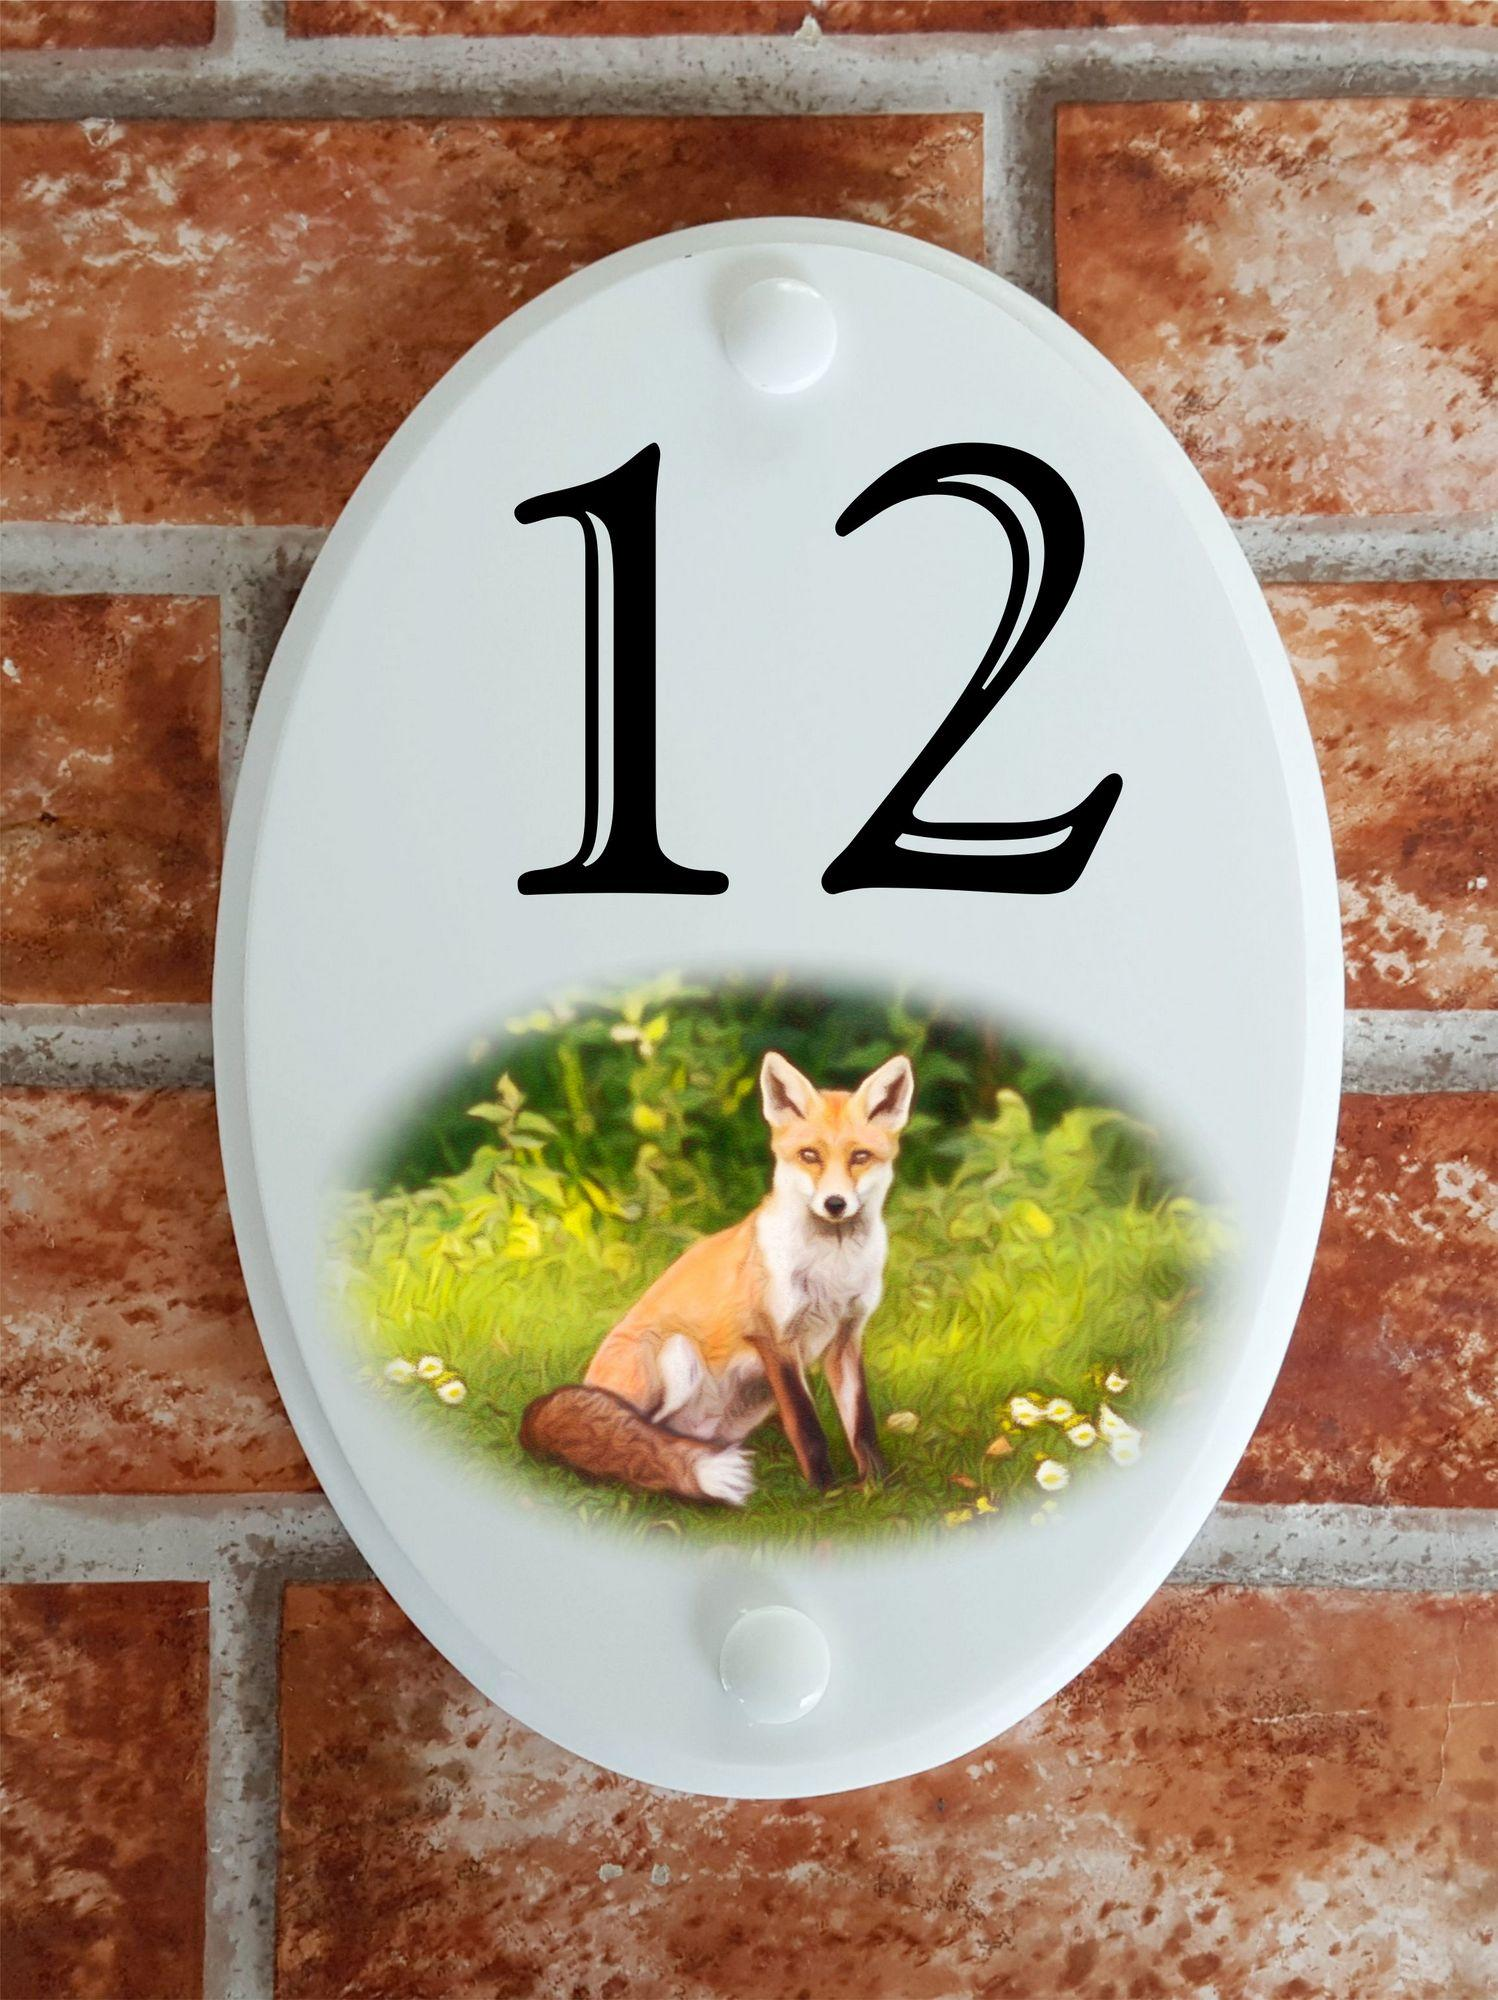 House number plaque displaying a fox motif picture